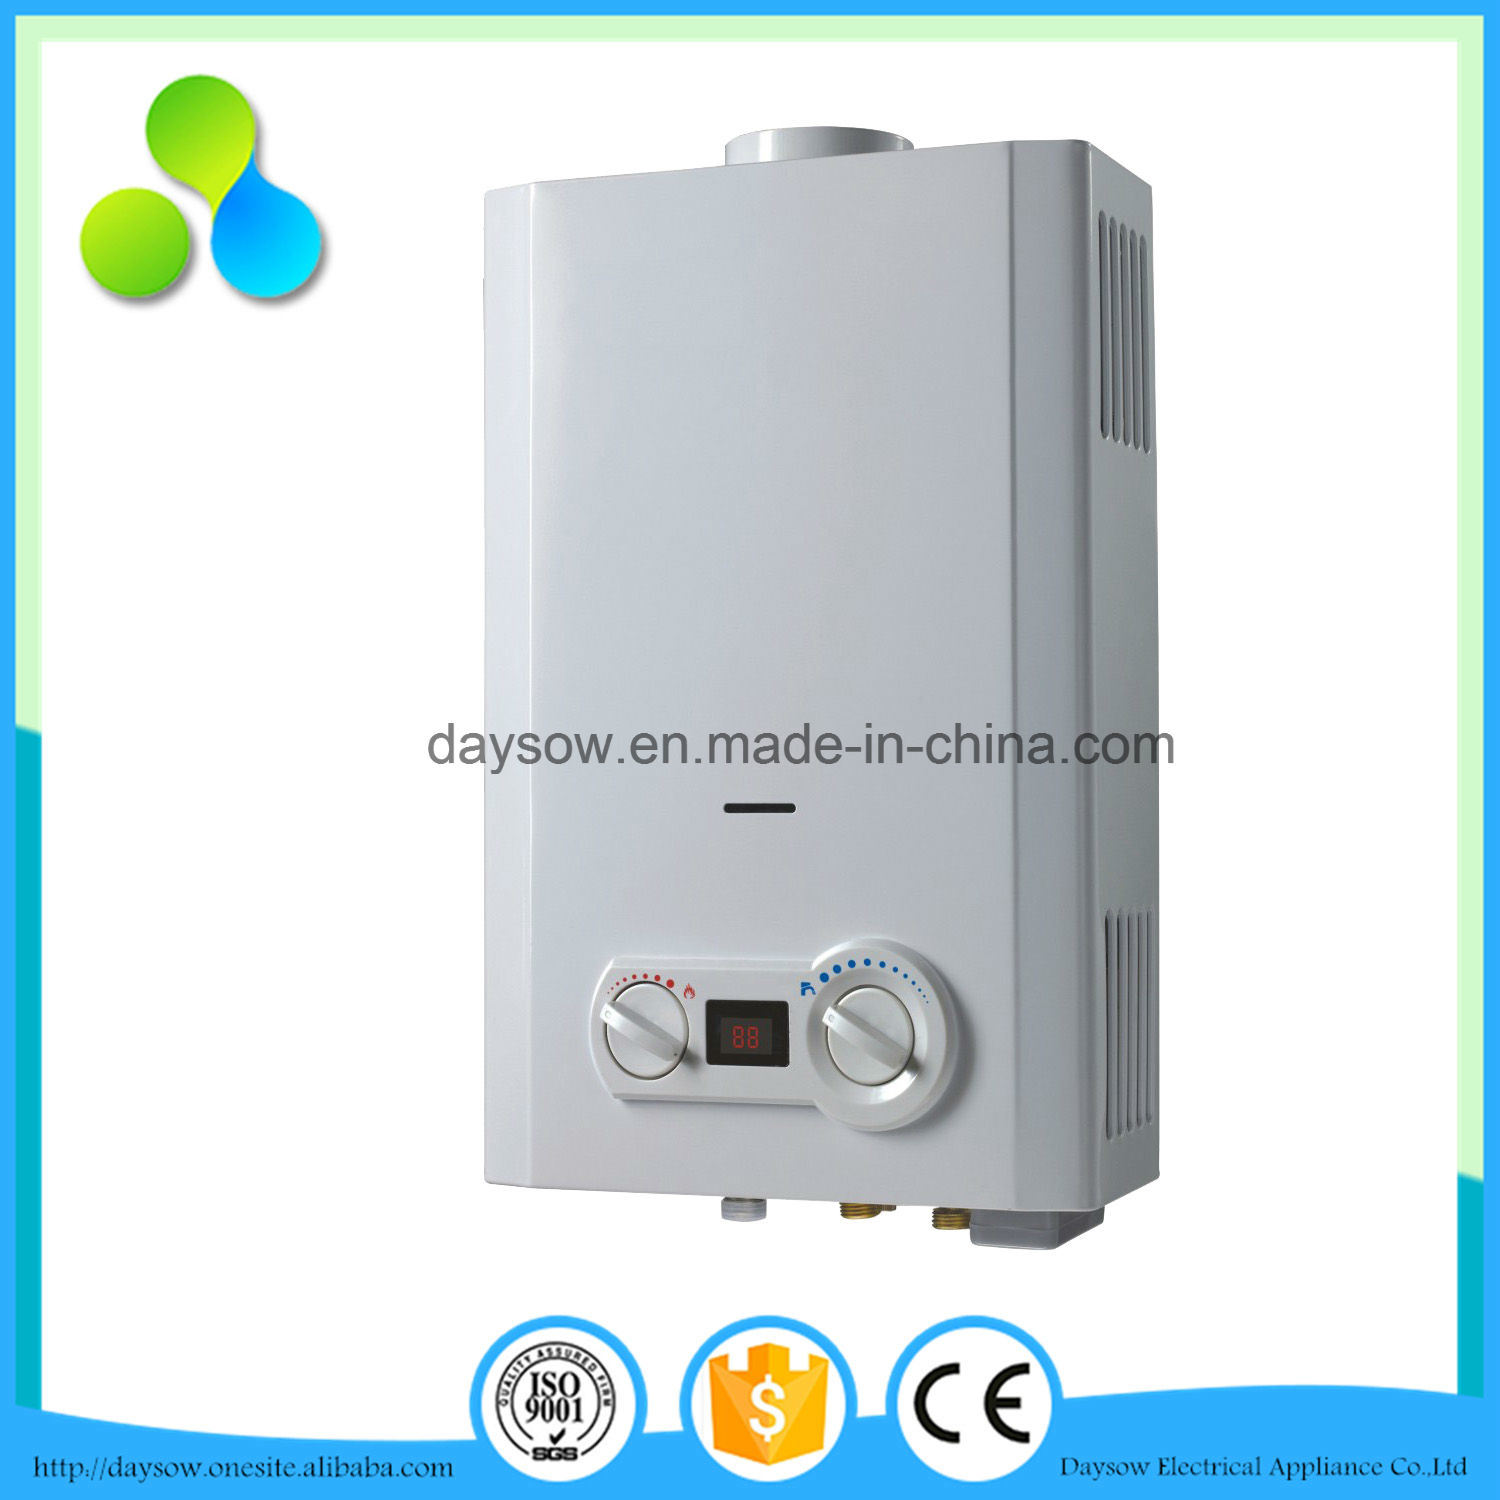 Low Pressure Gas Water Heater